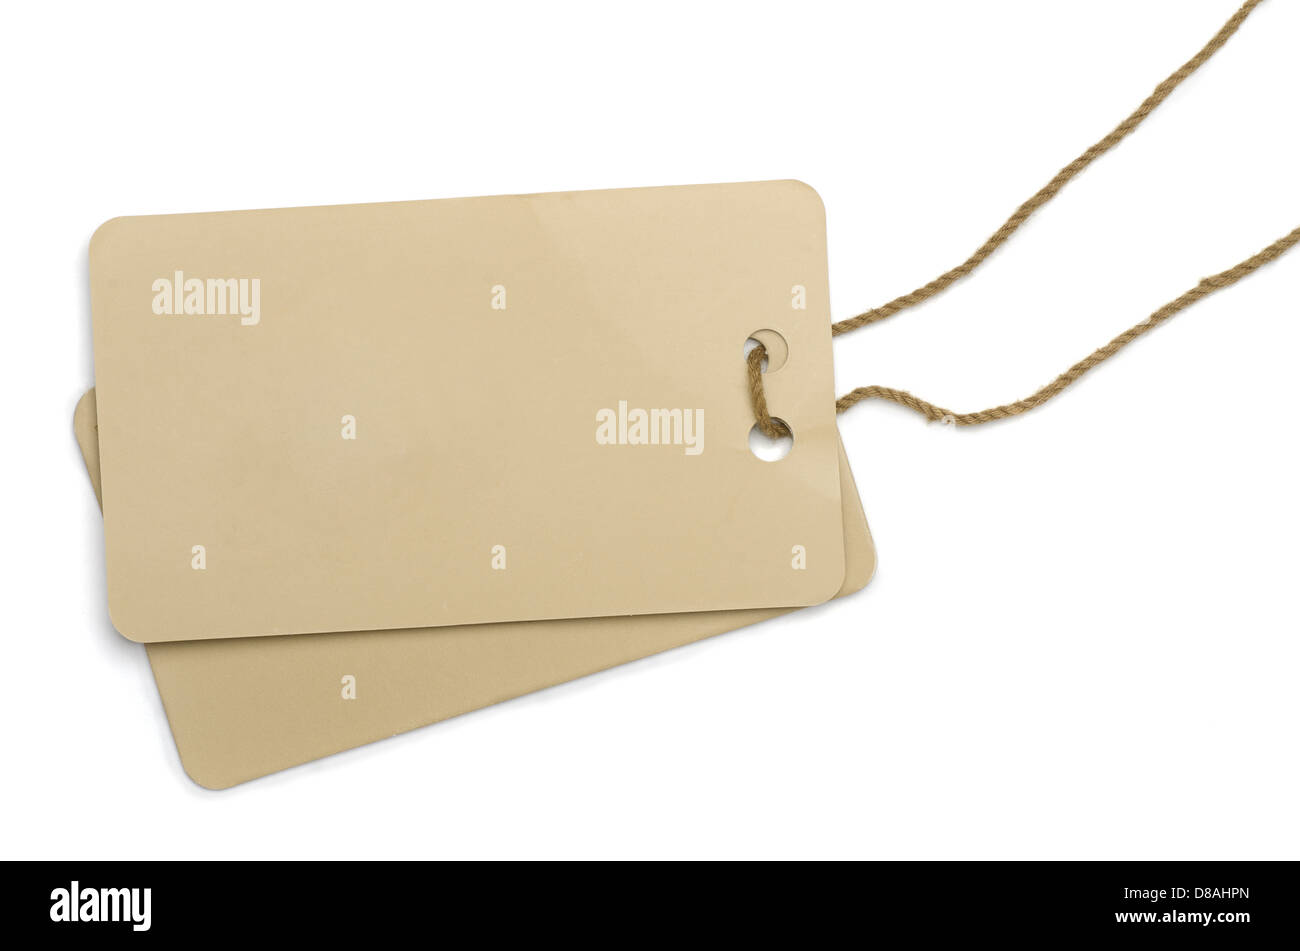 Two cardboard labels tied with brown string isolated on white - Stock Image